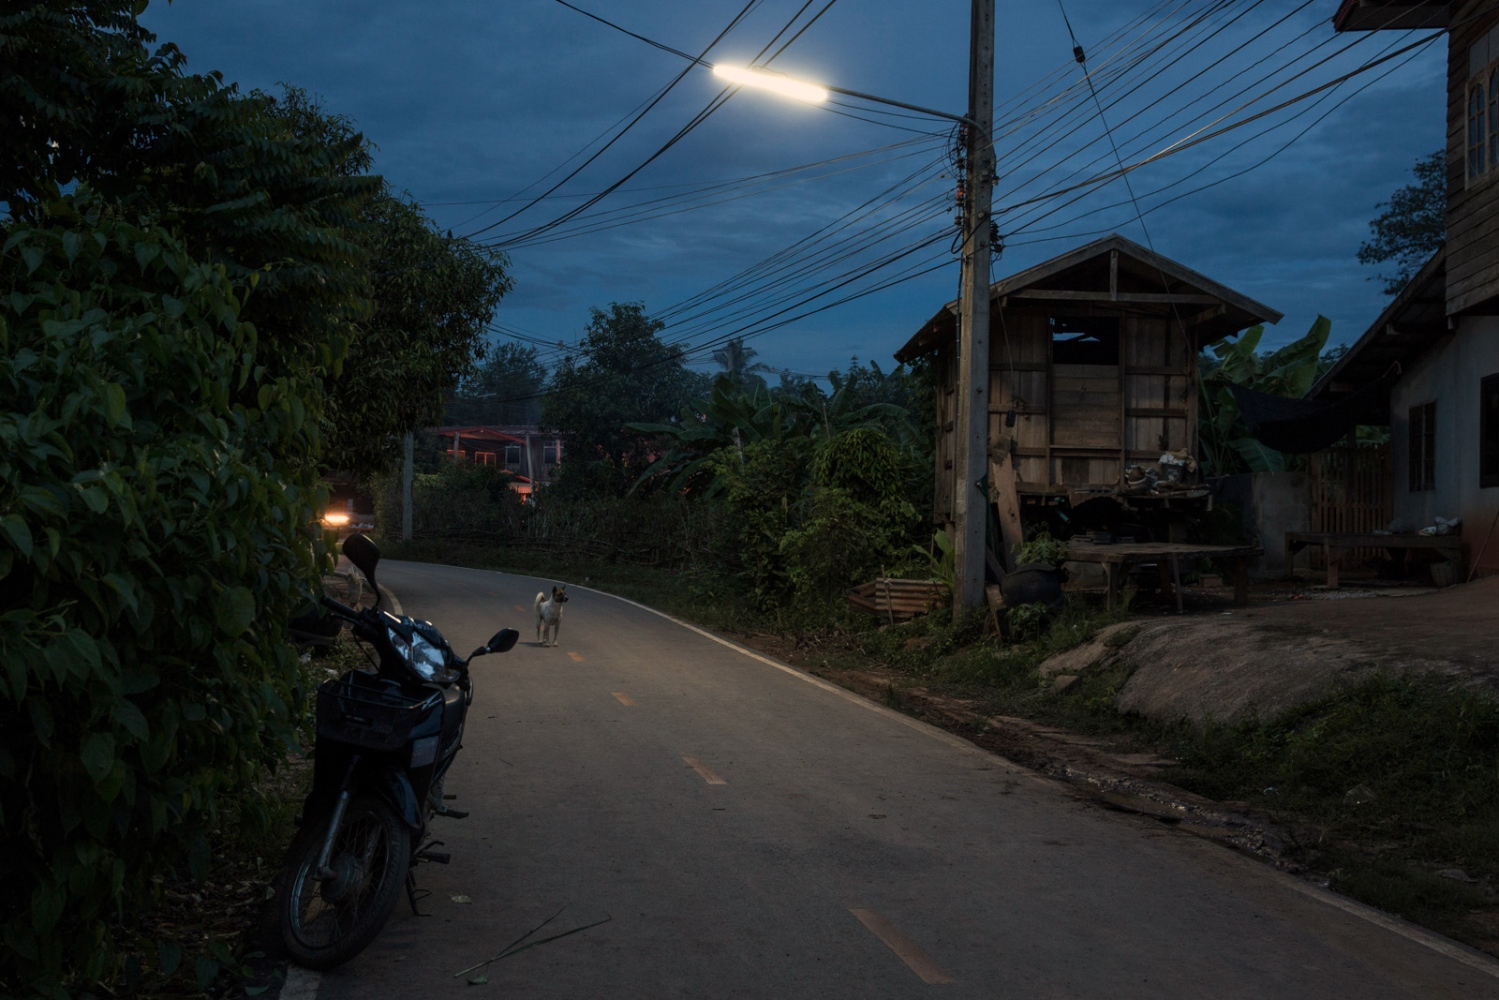 A quiet street at dusk in Na Nong Bong village.